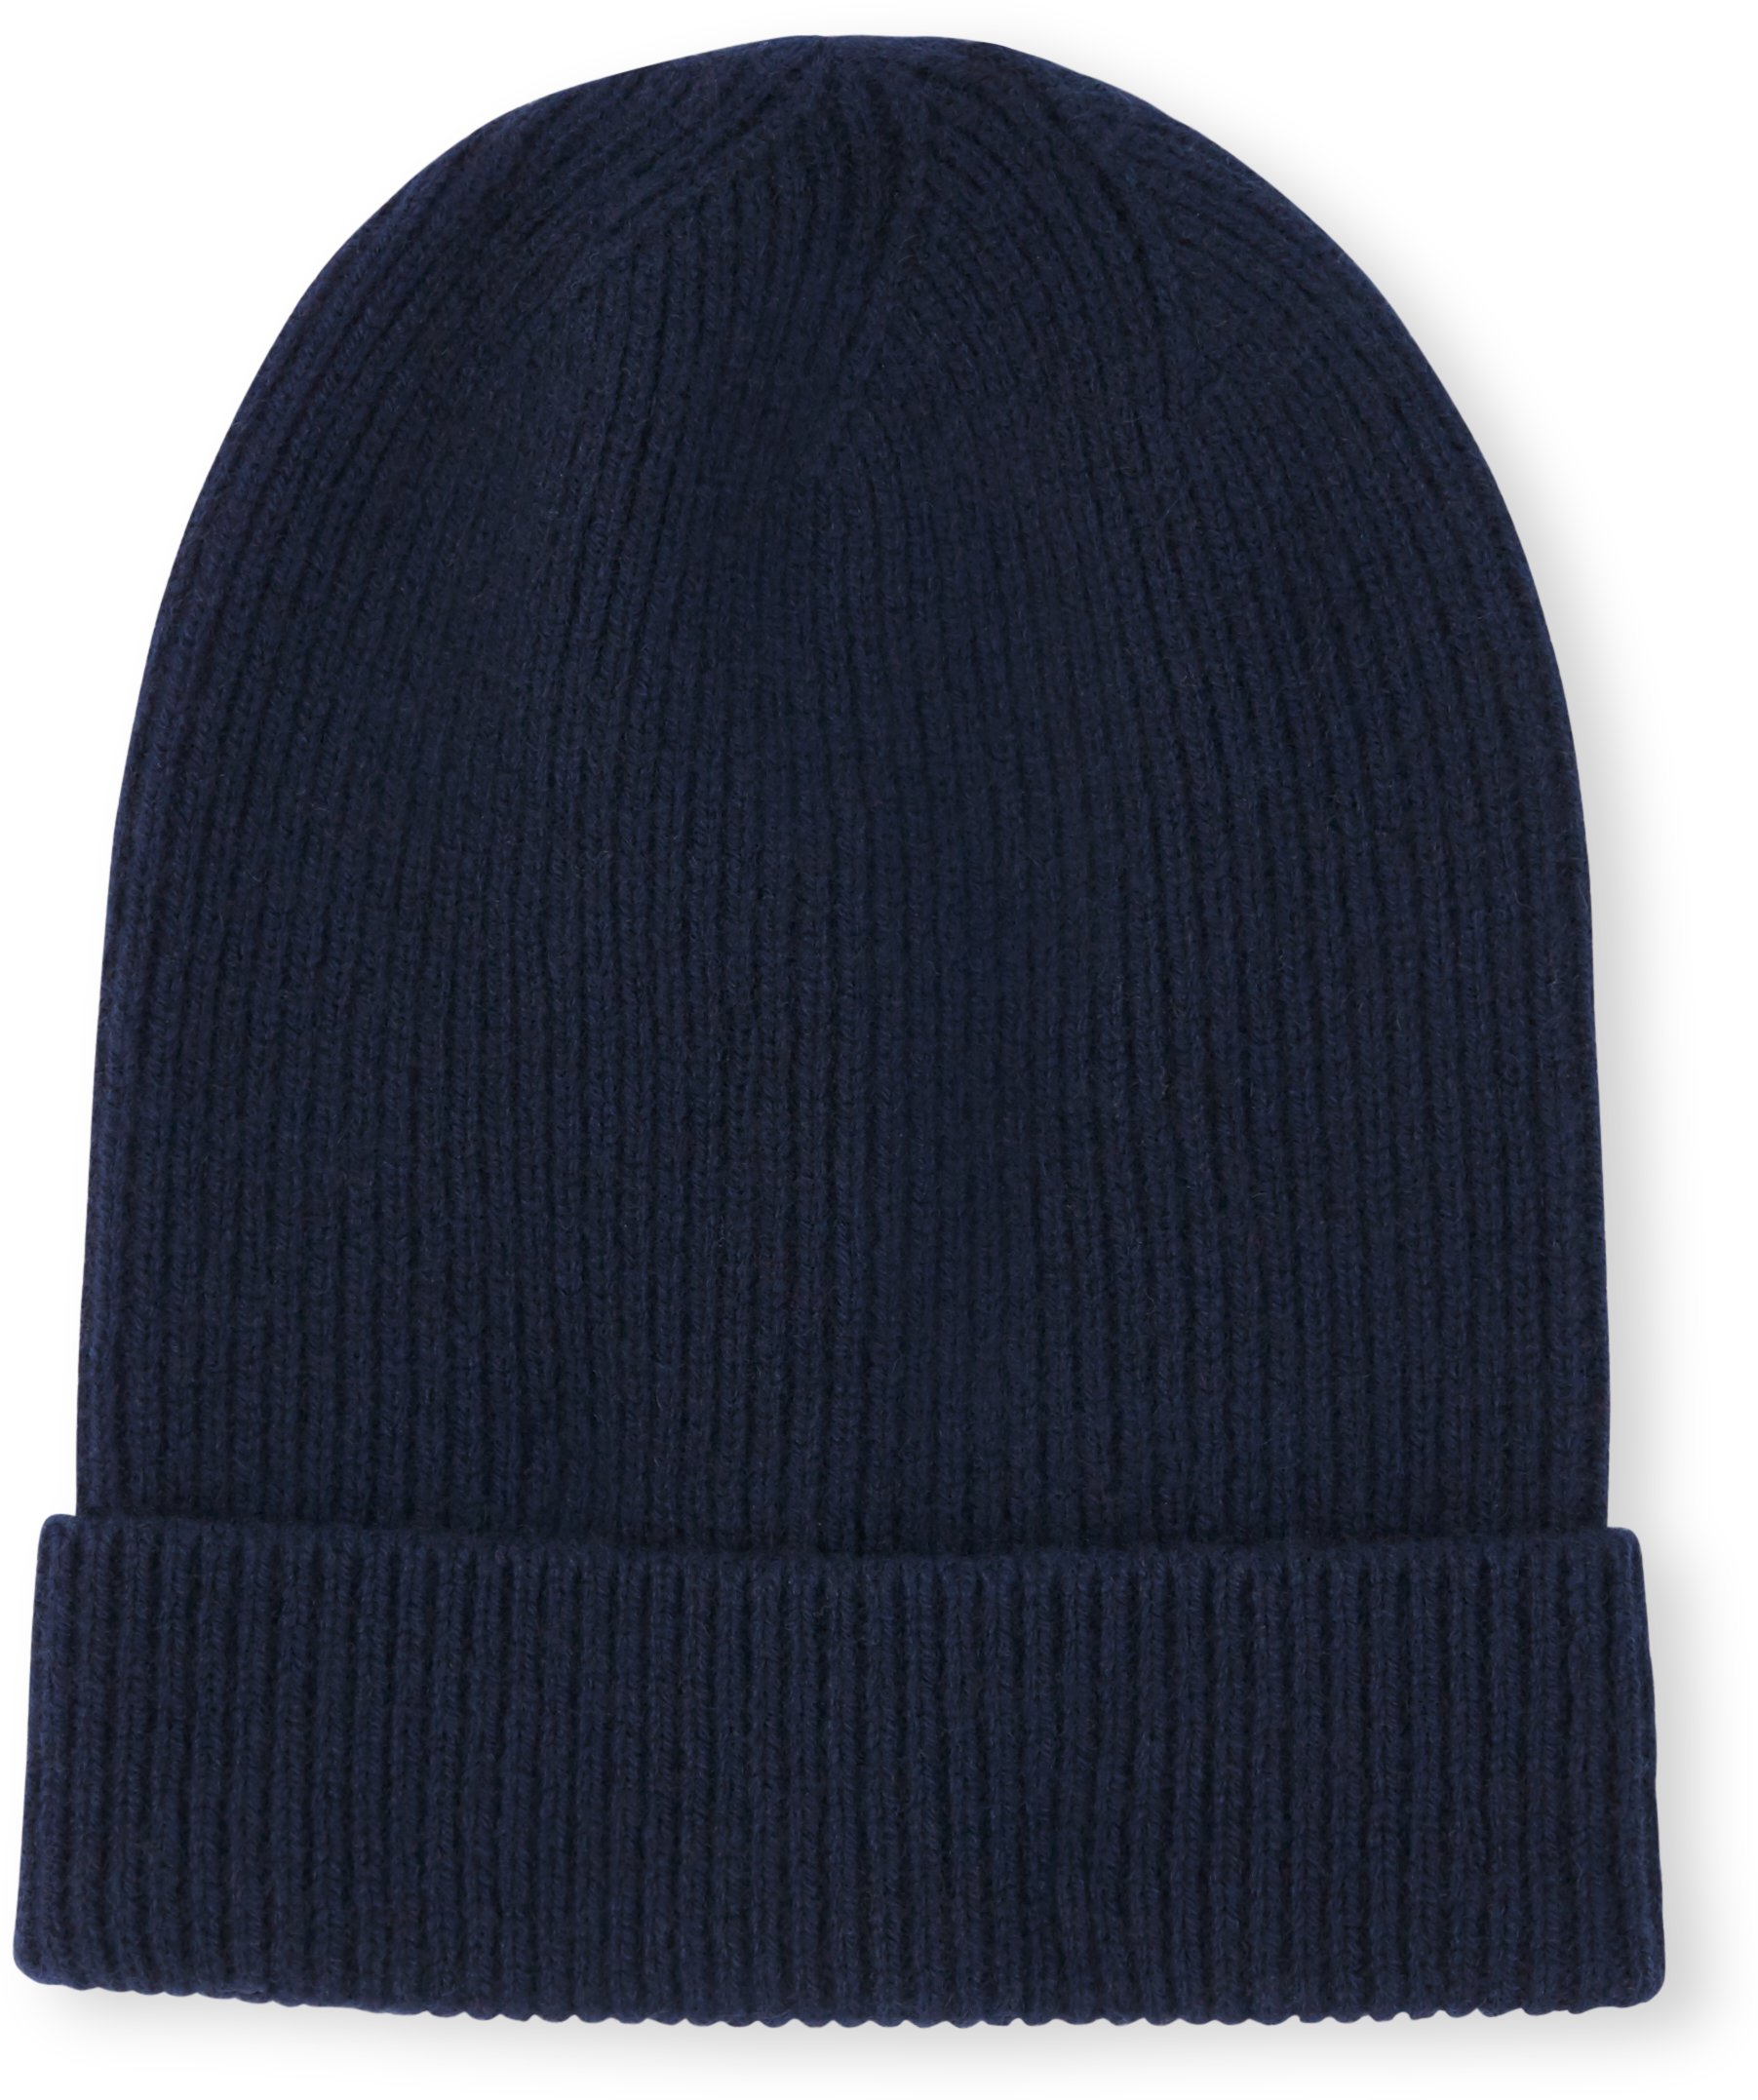 UAS Assembly Slouchy Beanie, Navy